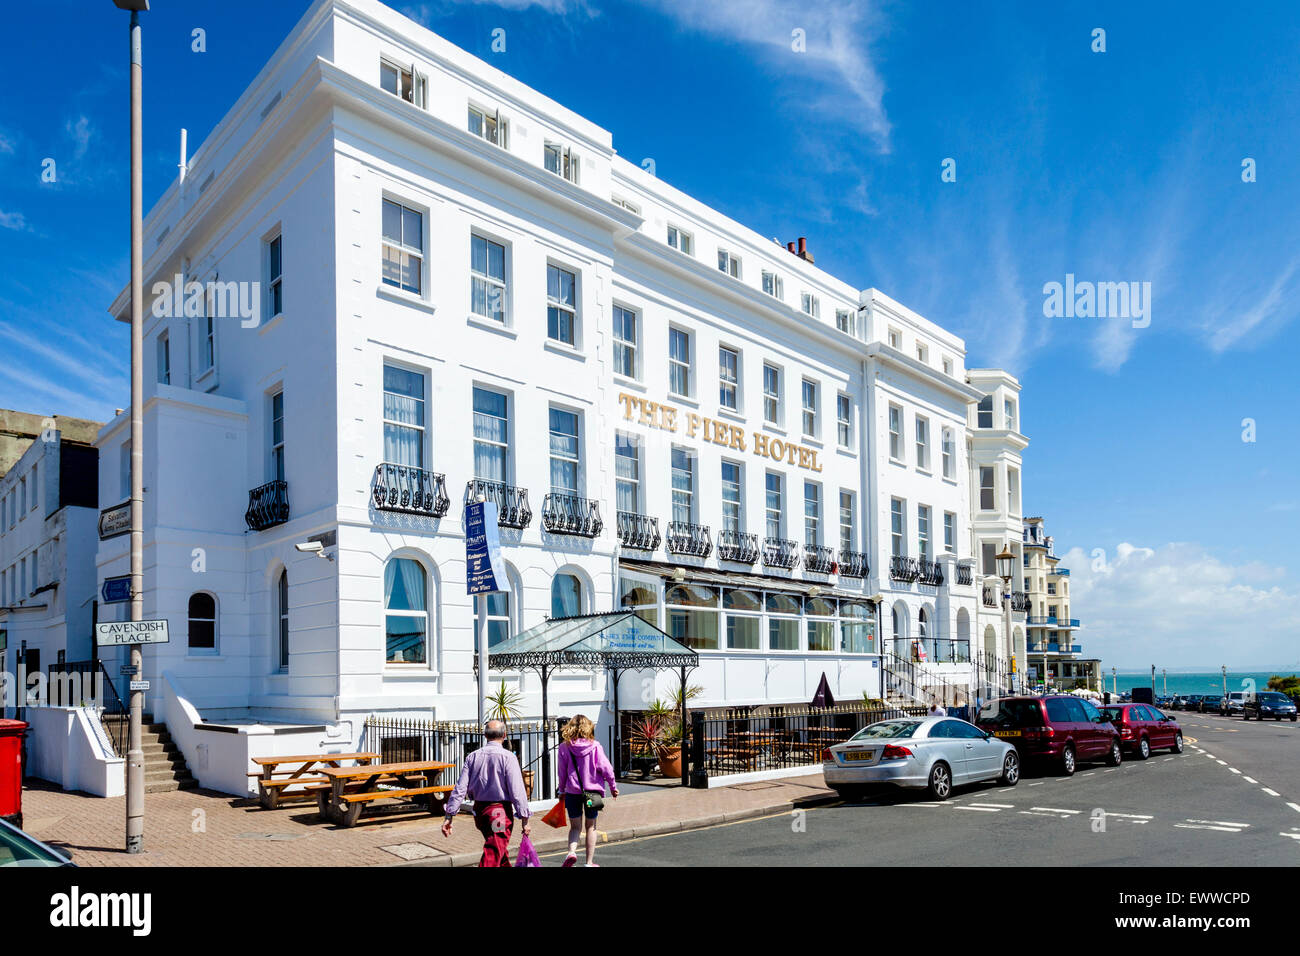 The Pier Hotel, Eastbourne, Sussex, UK - Stock Image